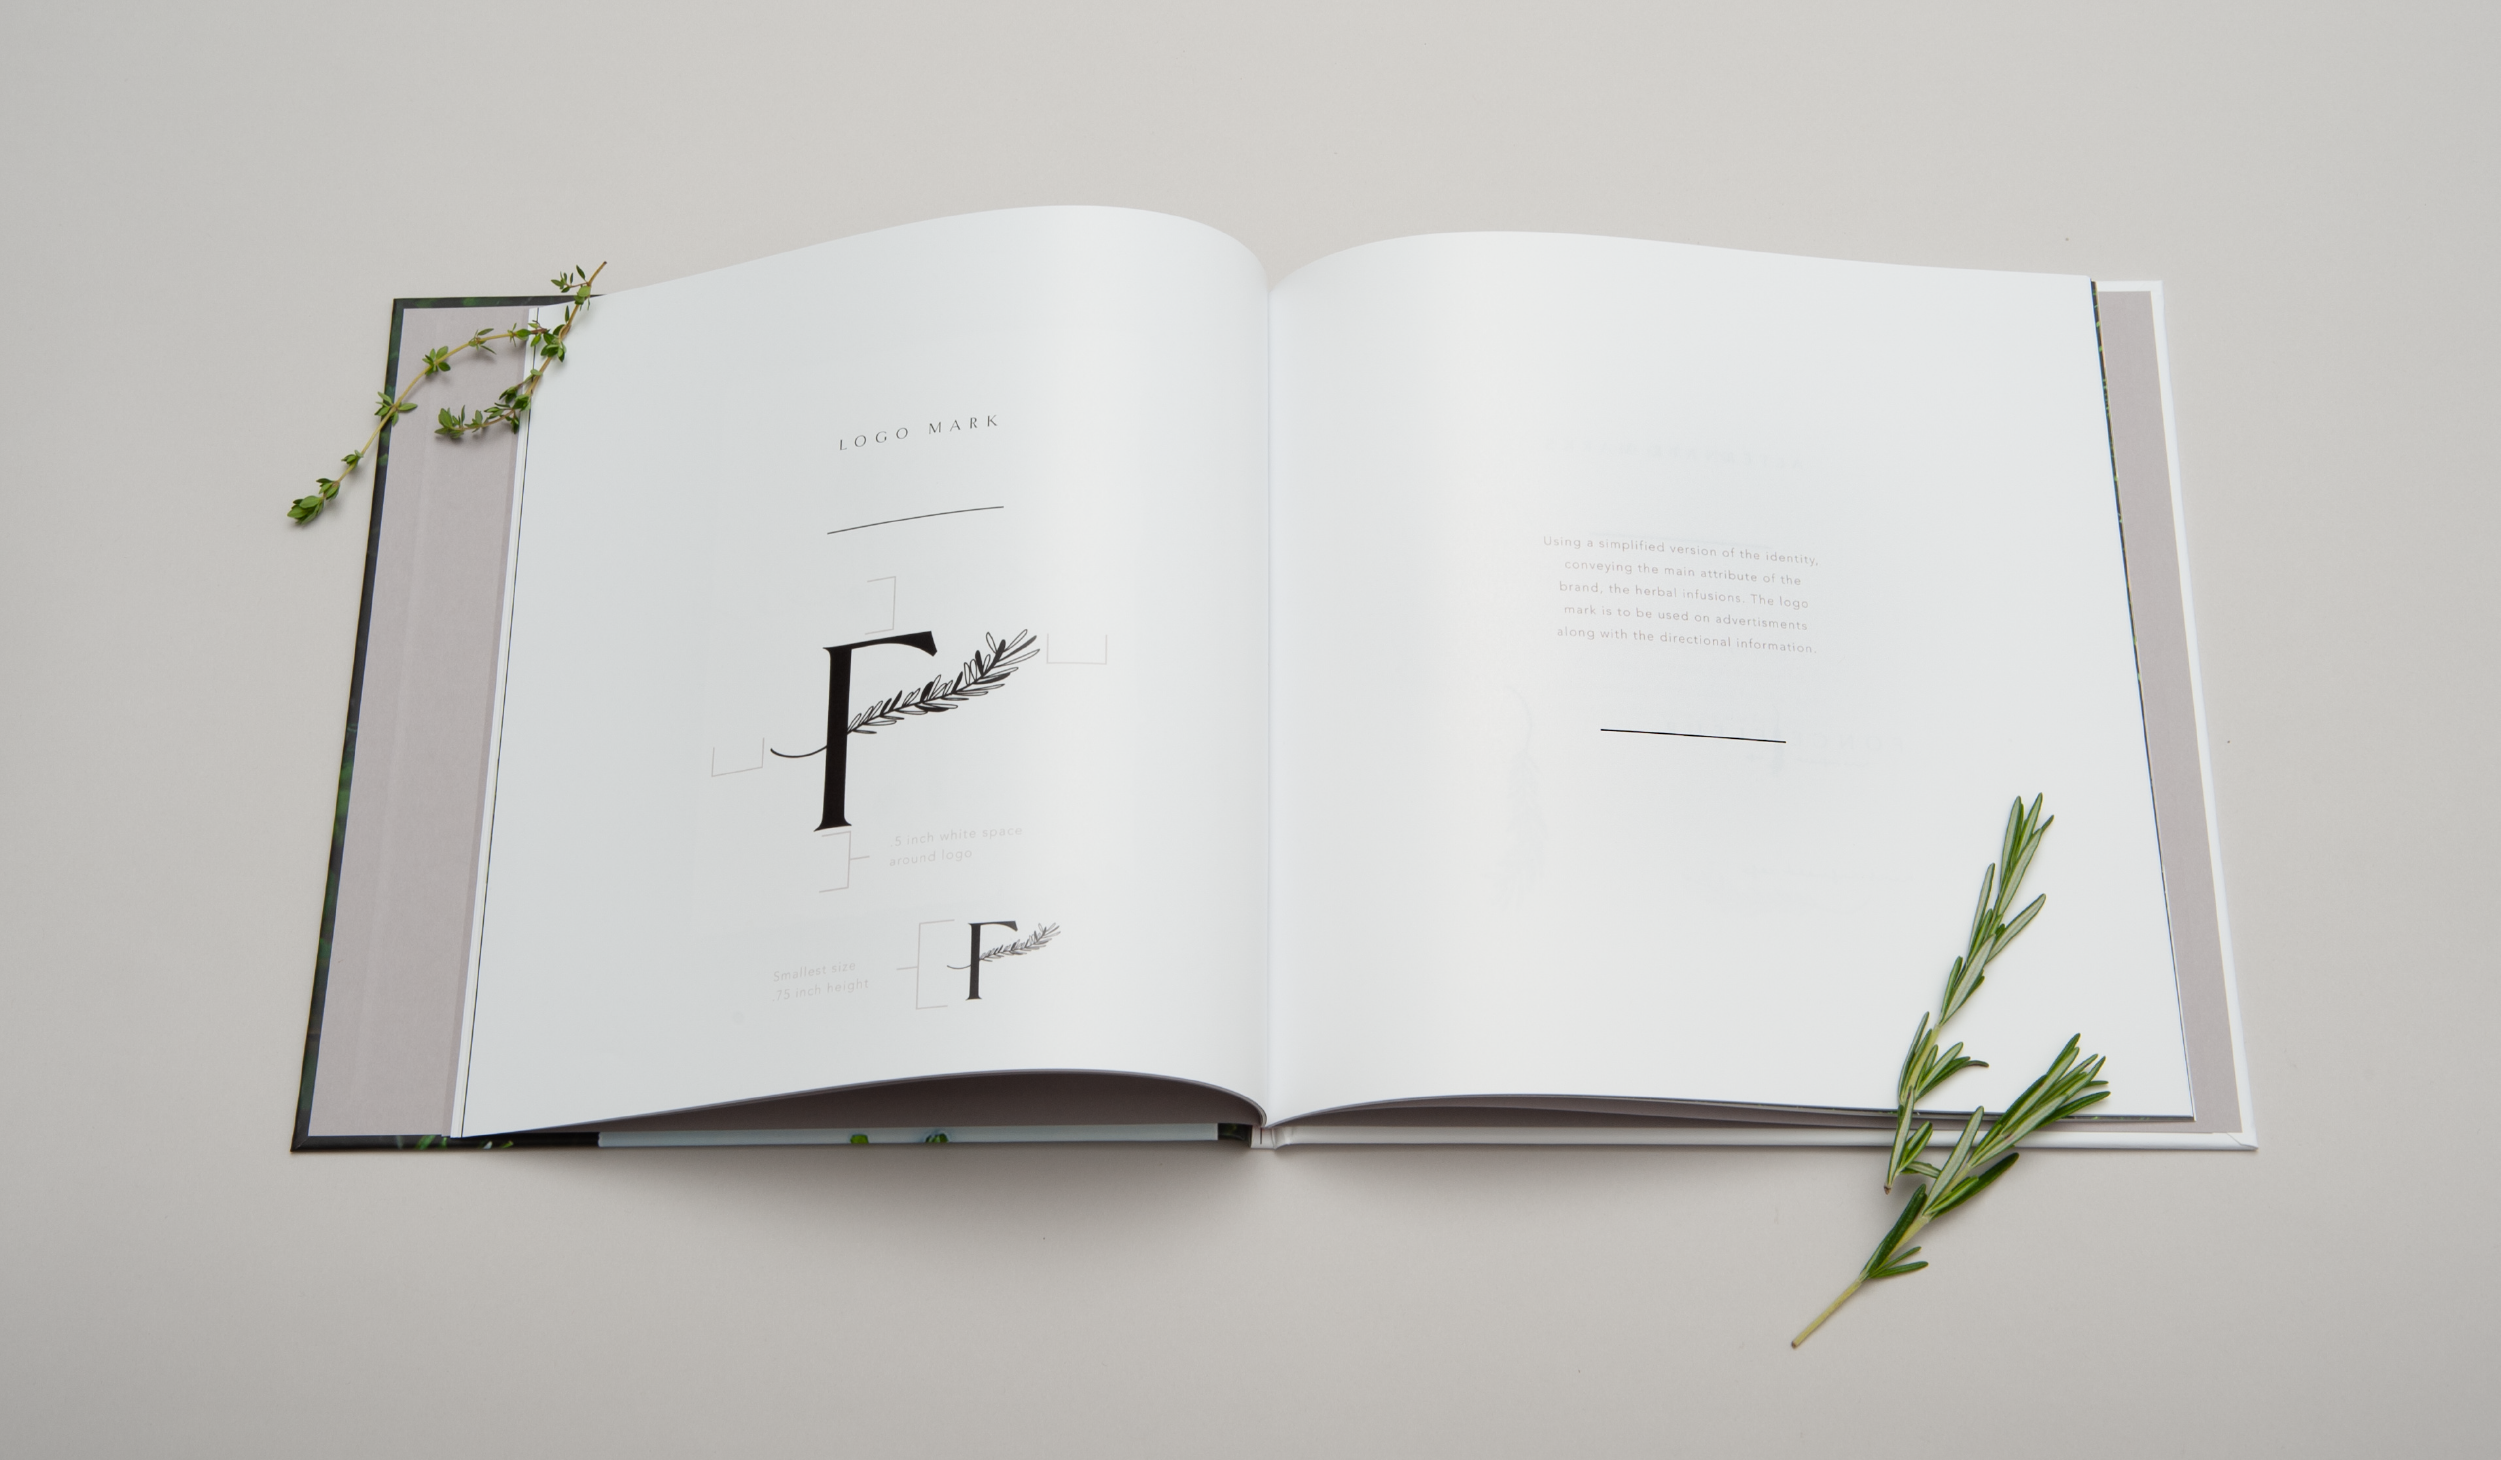 brand guidelines book for herbal cafe with rosemary sprigs